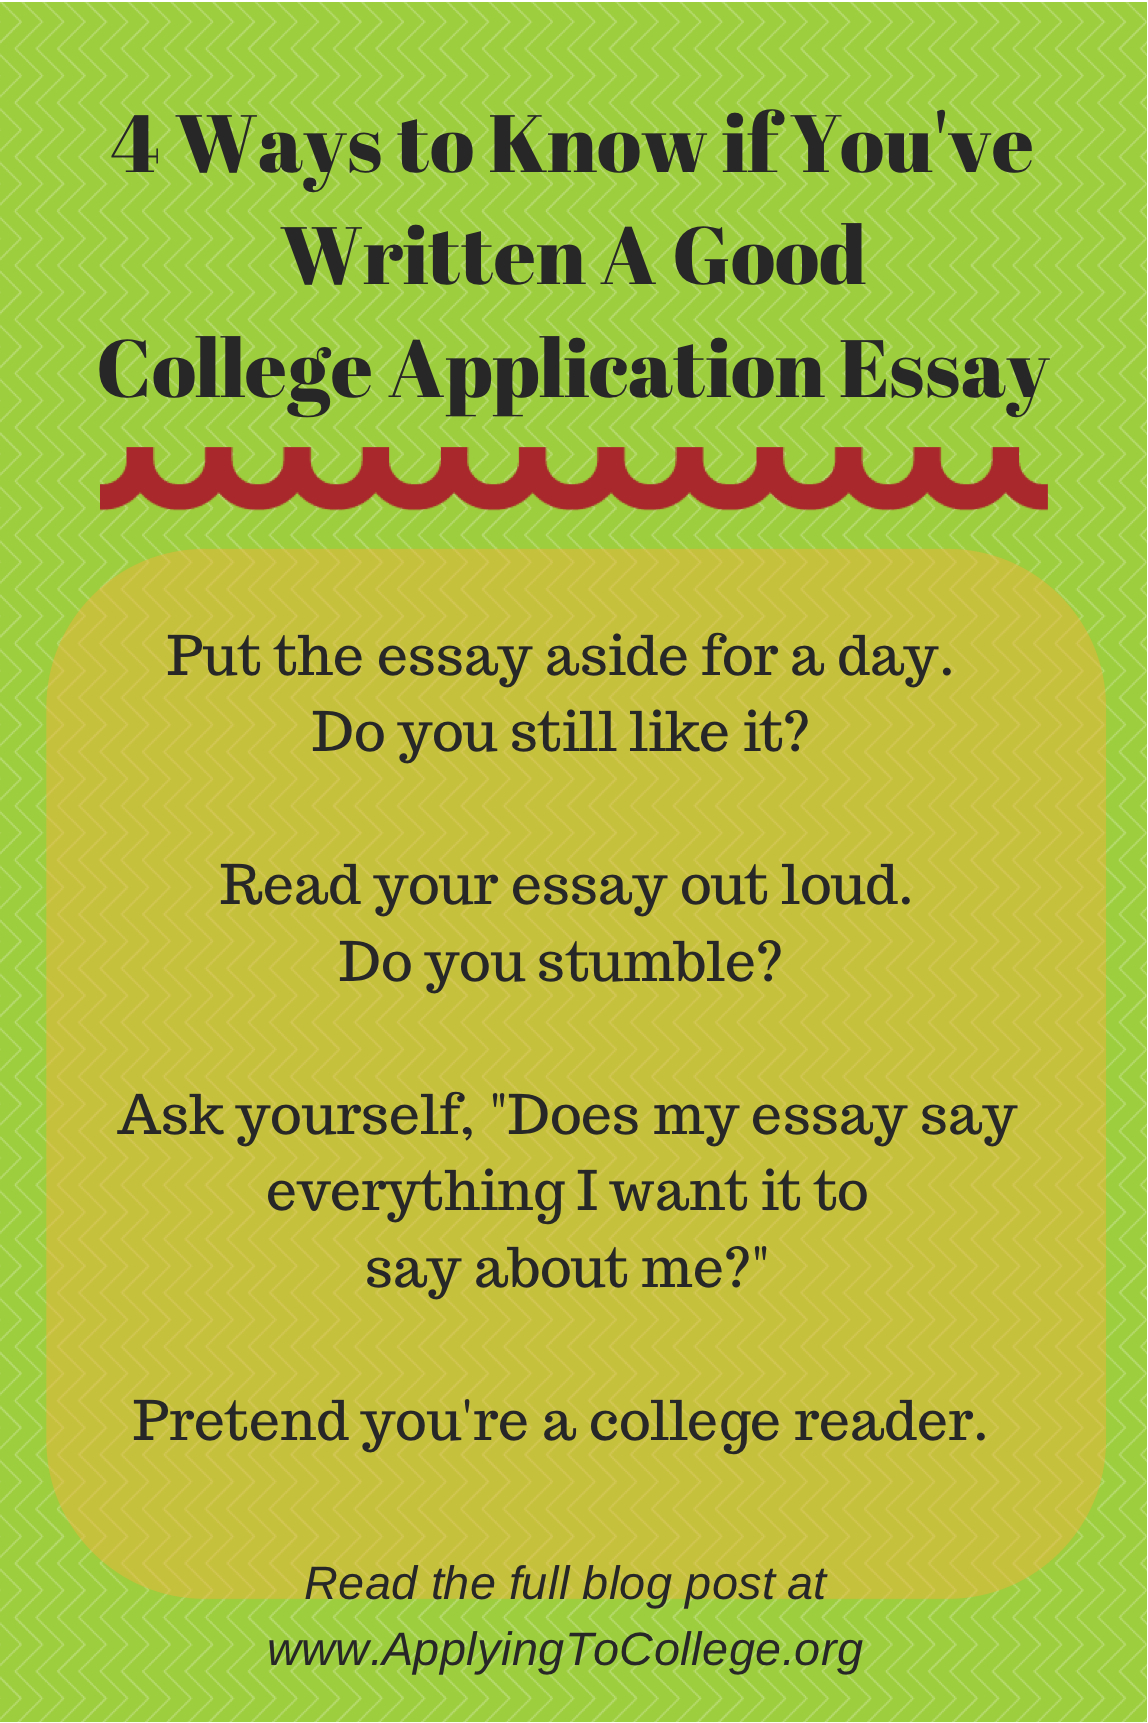 ways to know if you ve written a good college essay applying  4 ways to know if you ve written a good college application essay